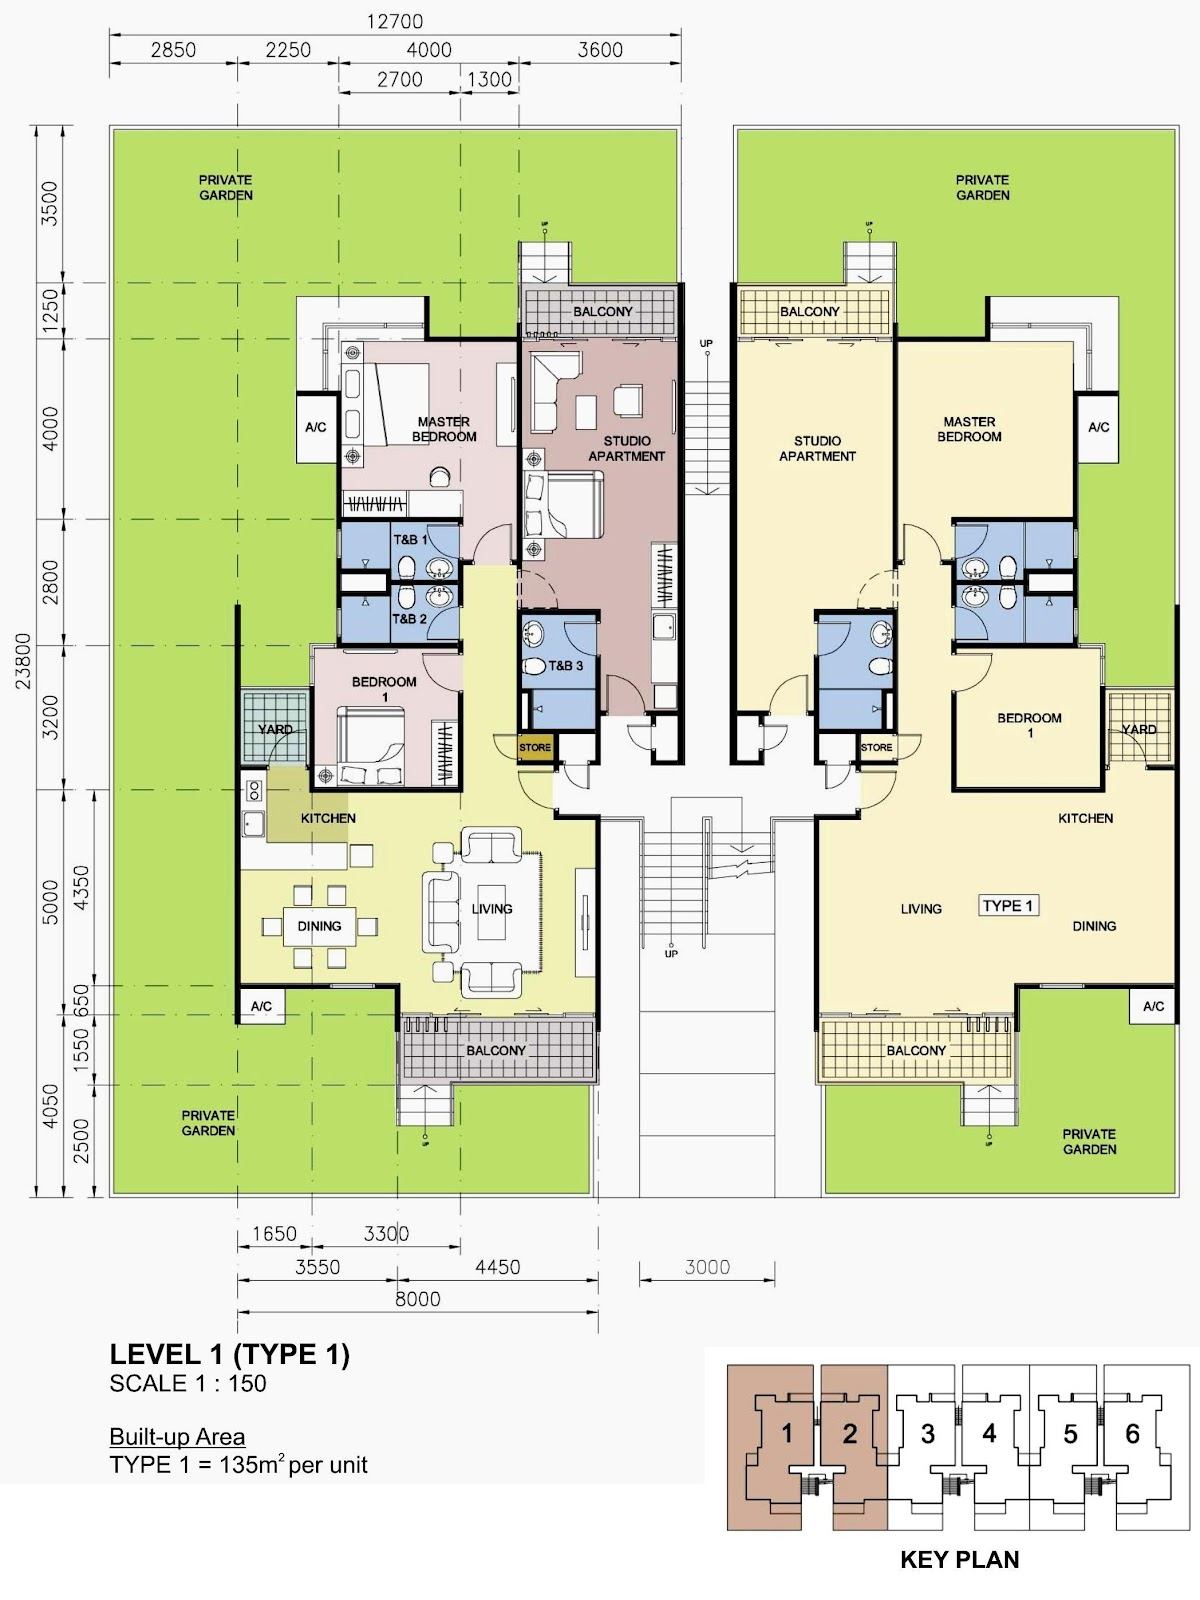 Rhpark Floor Plan Villa Level 1 Type 1